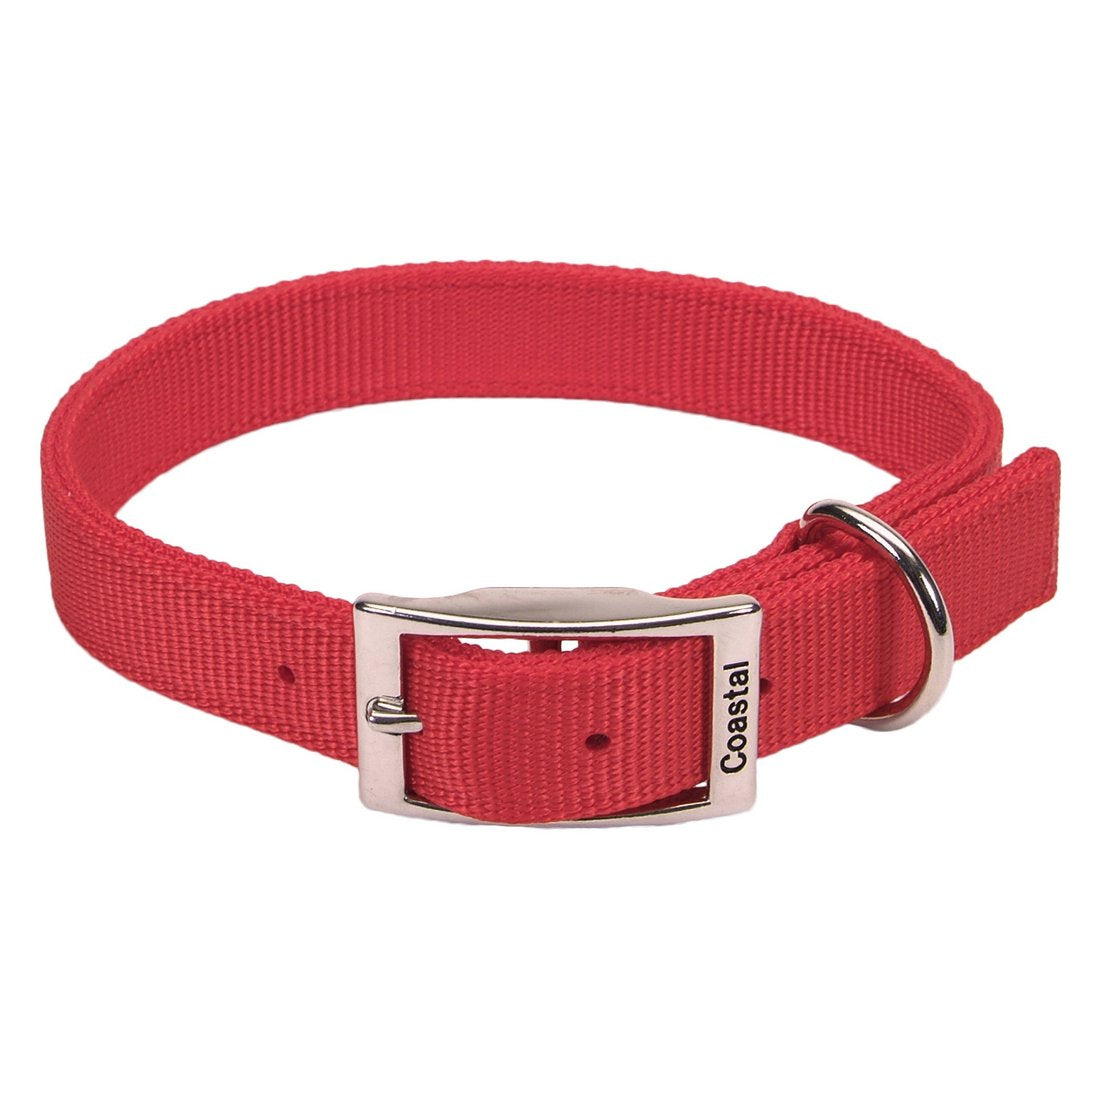 "Coastal Double Nylon Collar 22"" Red"